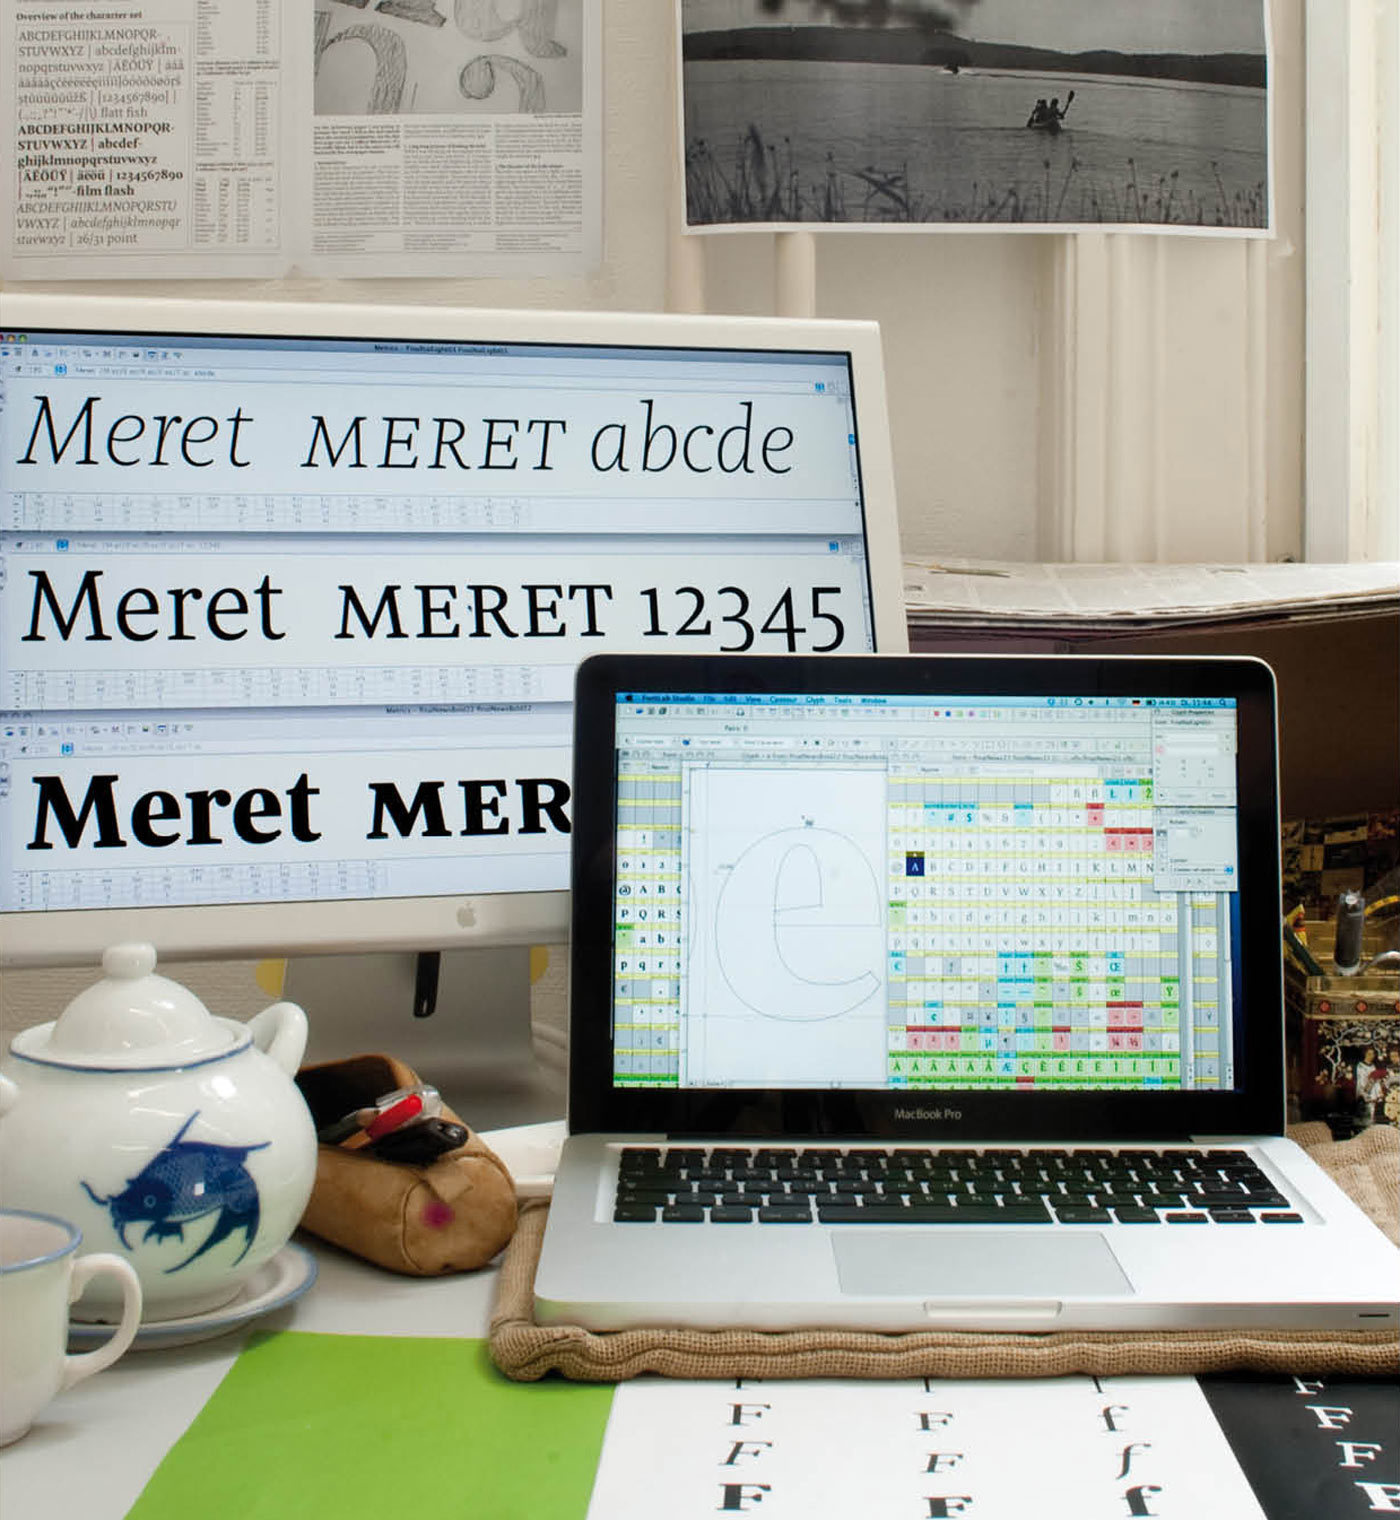 Meret Pro Making Of Newspaper Magazine Editorial Typeface Typemates 20